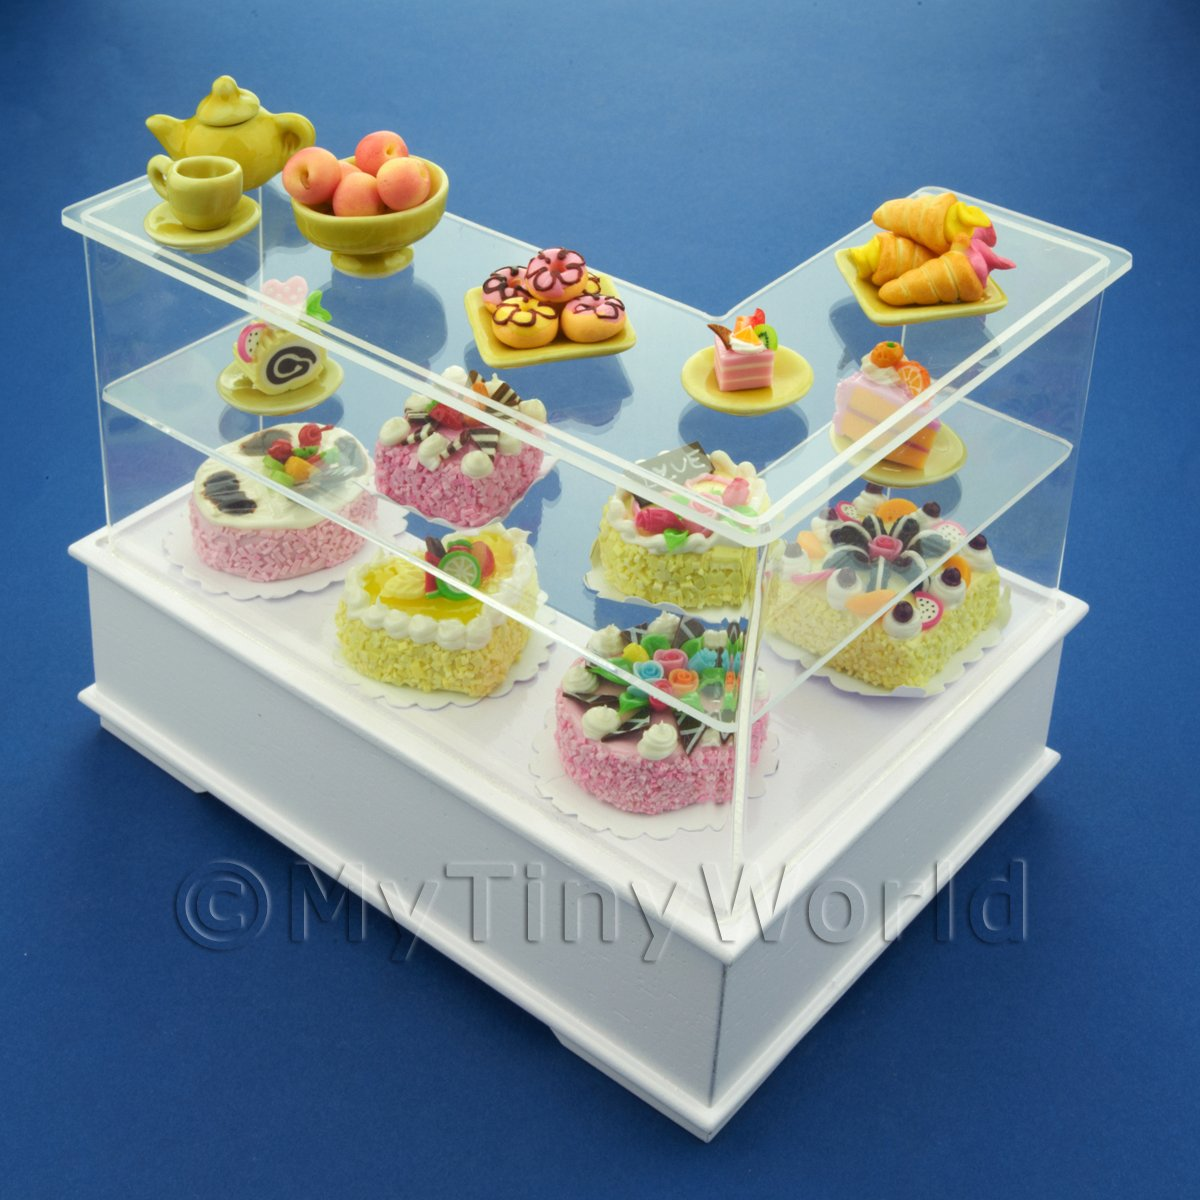 Dolls House Miniature Left Hand Yellow Themed Cake Counter